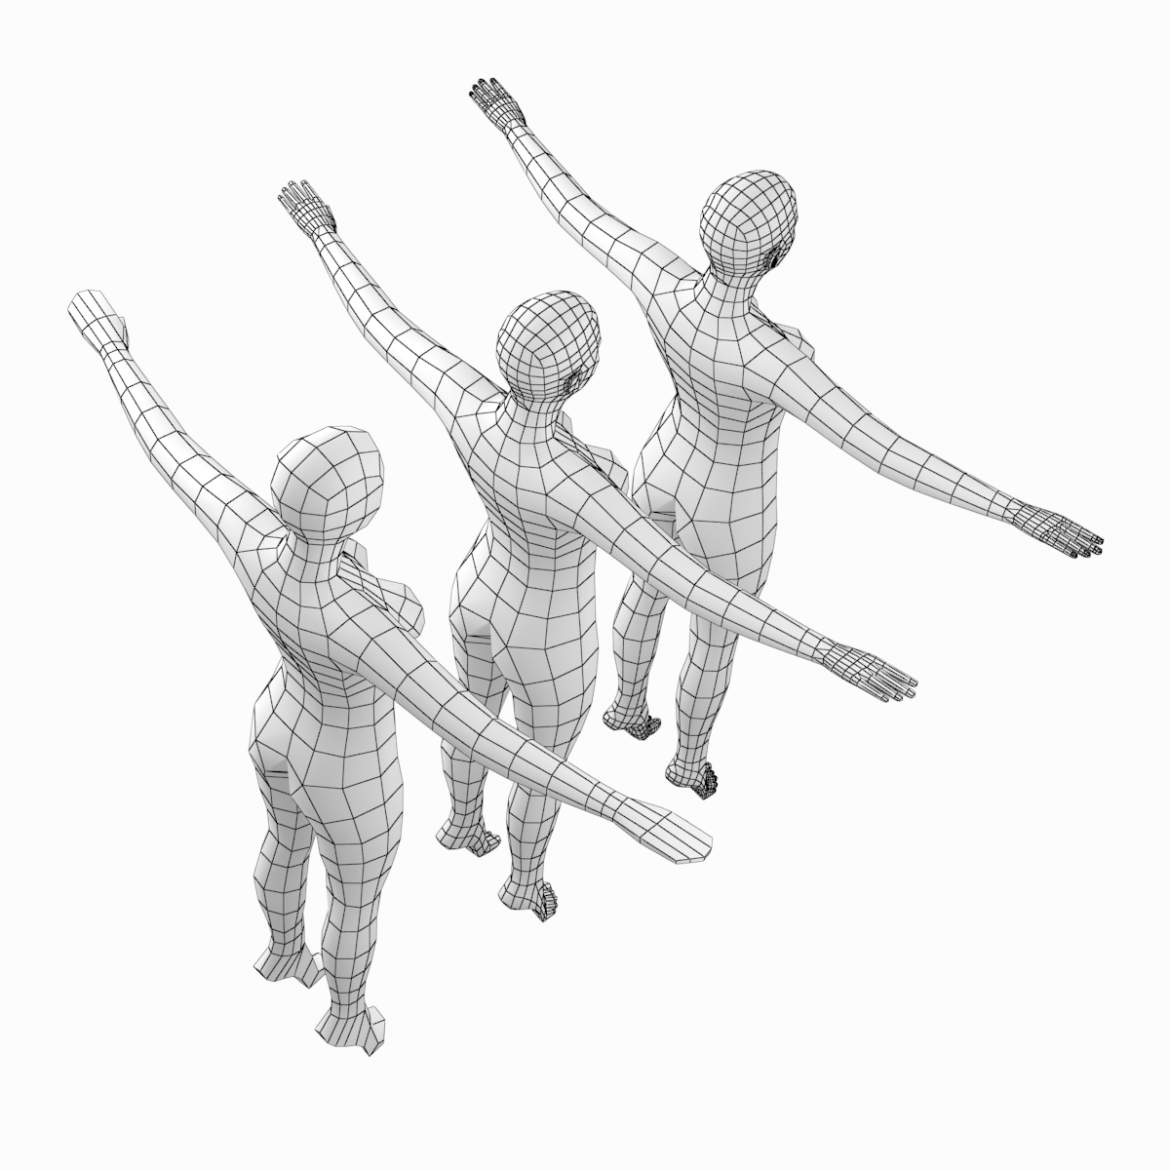 female body on toes base mesh in t-pose 3d model txt 3ds c4d dae dwg dxf fbx max ma mb obj stl png 305202